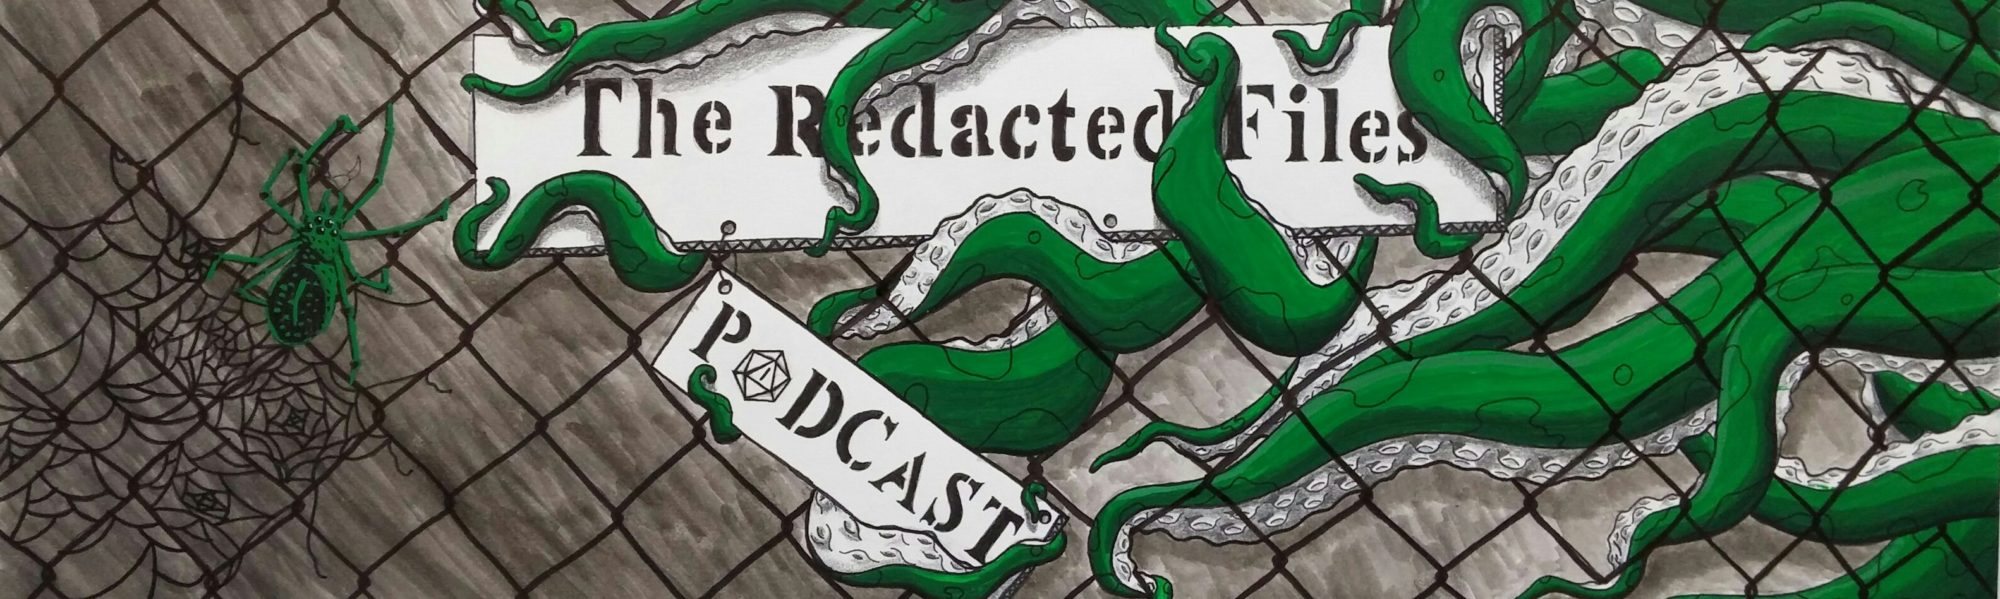 The Redacted Files Podcast